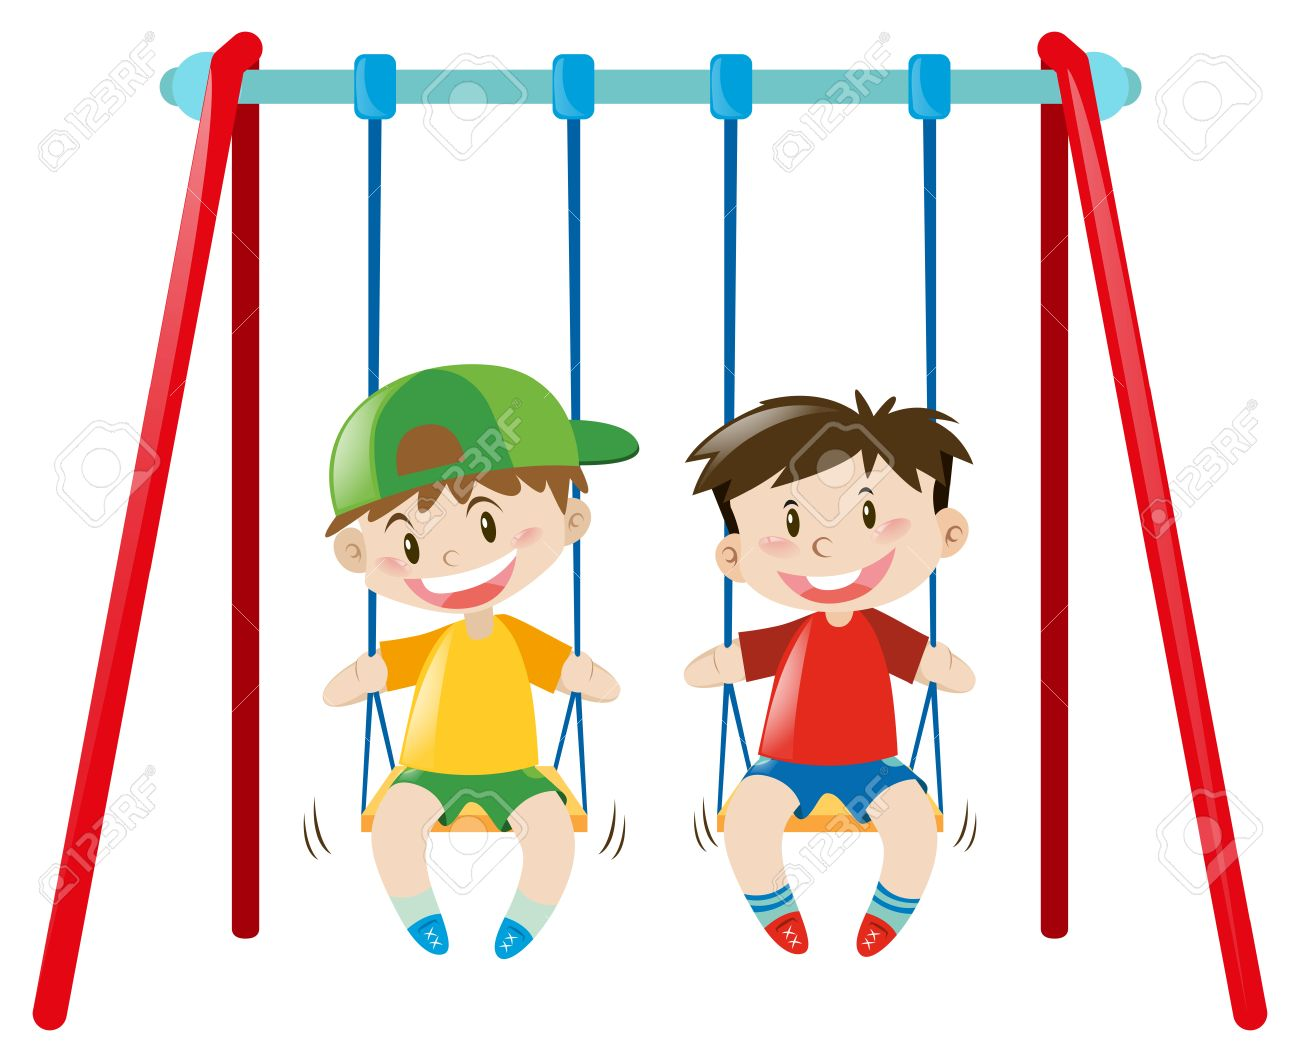 two boys on the swings illustration royalty free cliparts vectors rh 123rf com sewing clip art for business cards sewing clip art printables